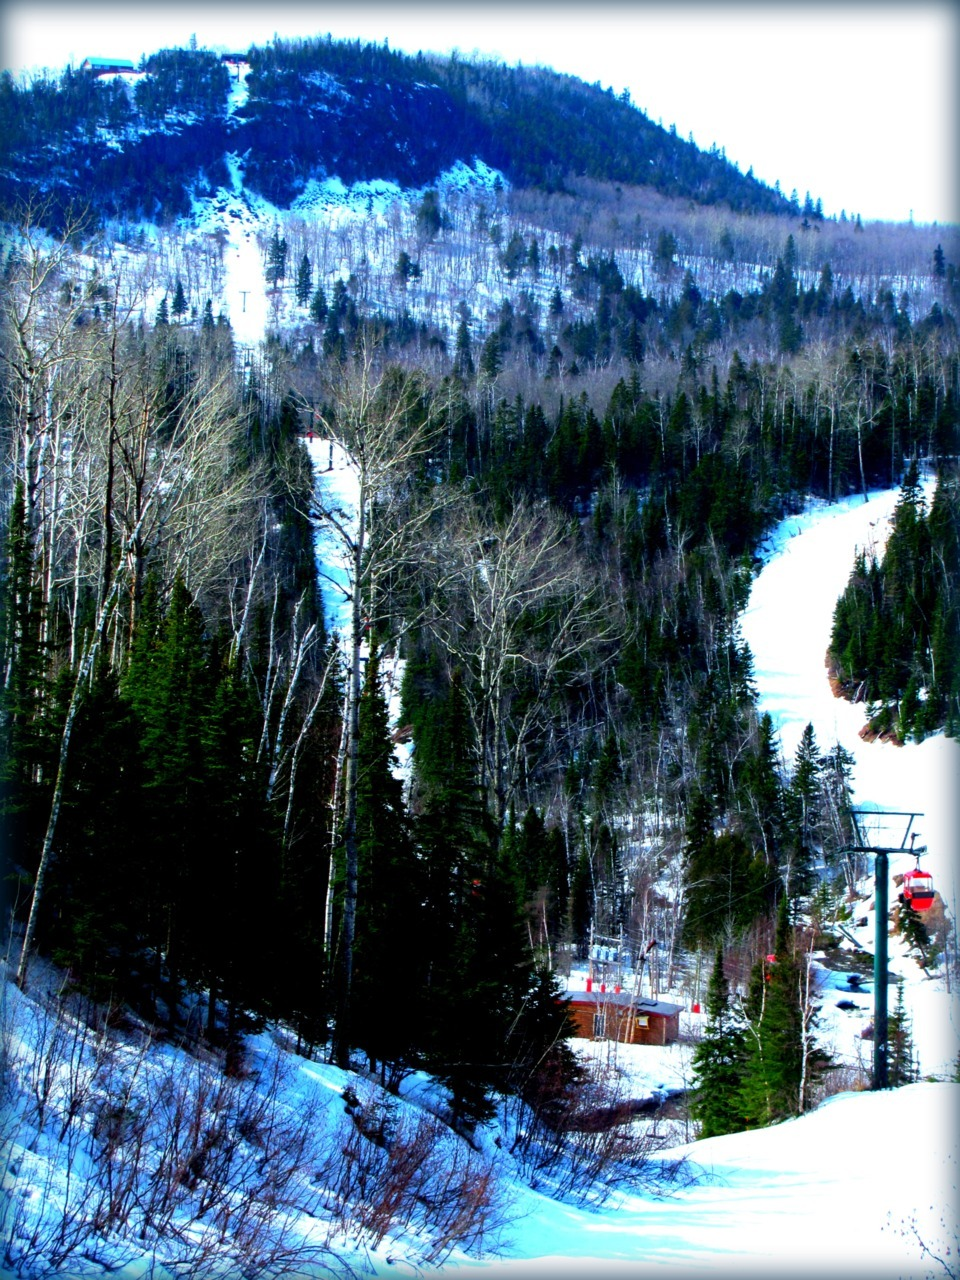 Lutsen Mountain - Lutsen MN (photo - F.Golden)